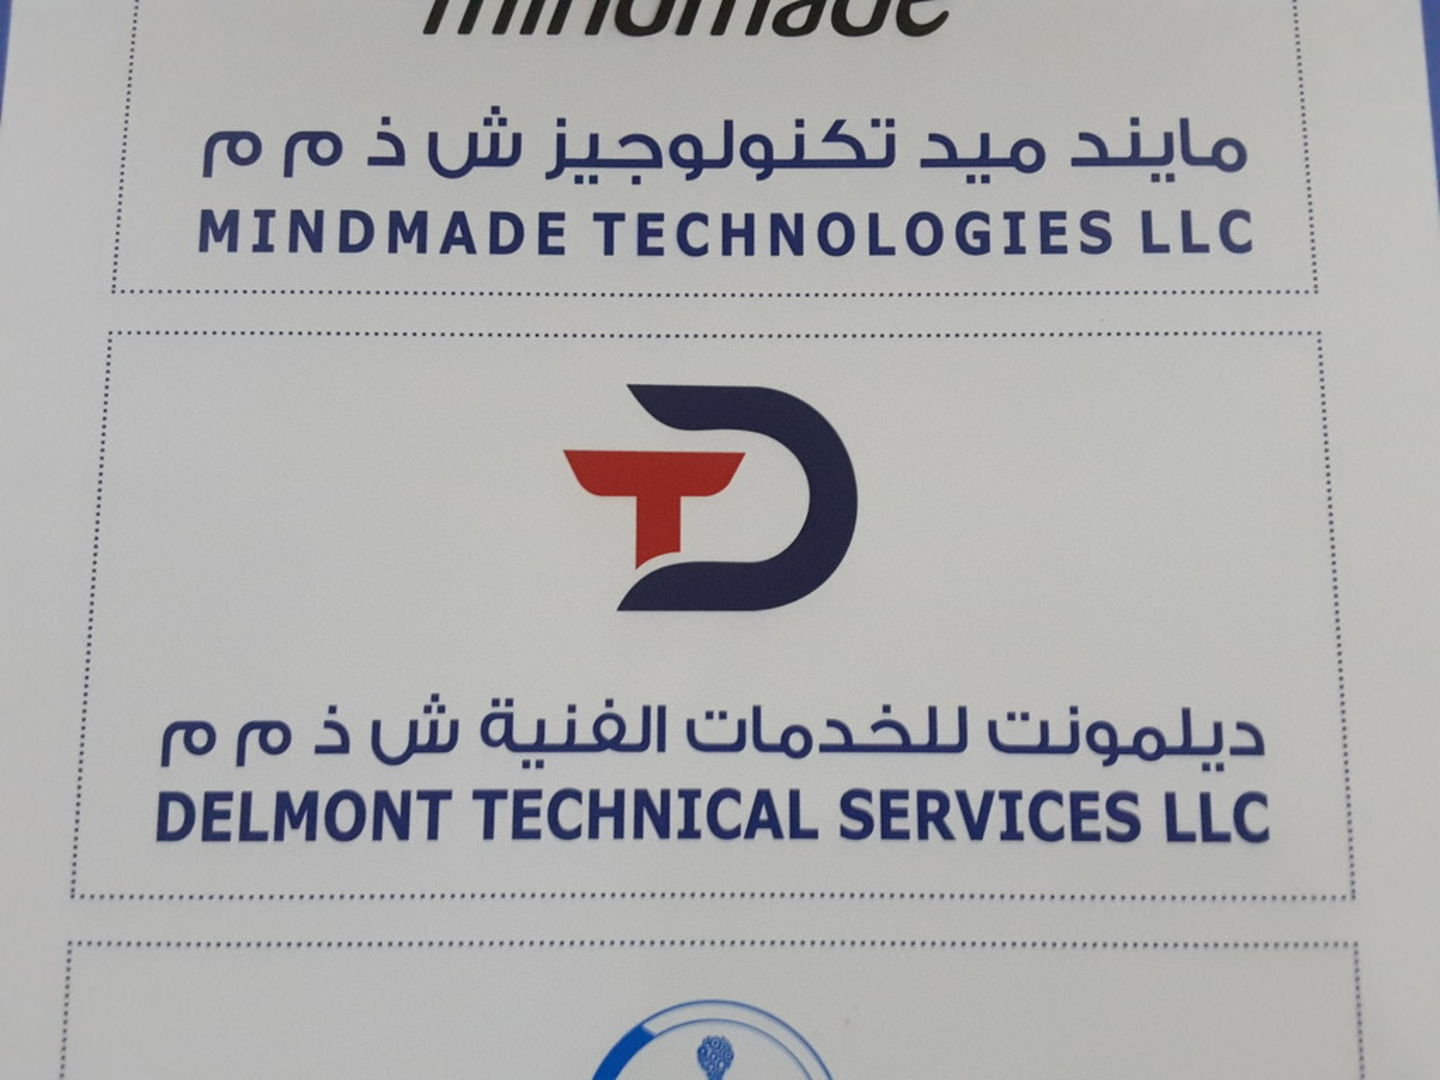 Walif-business-delmont-technical-services